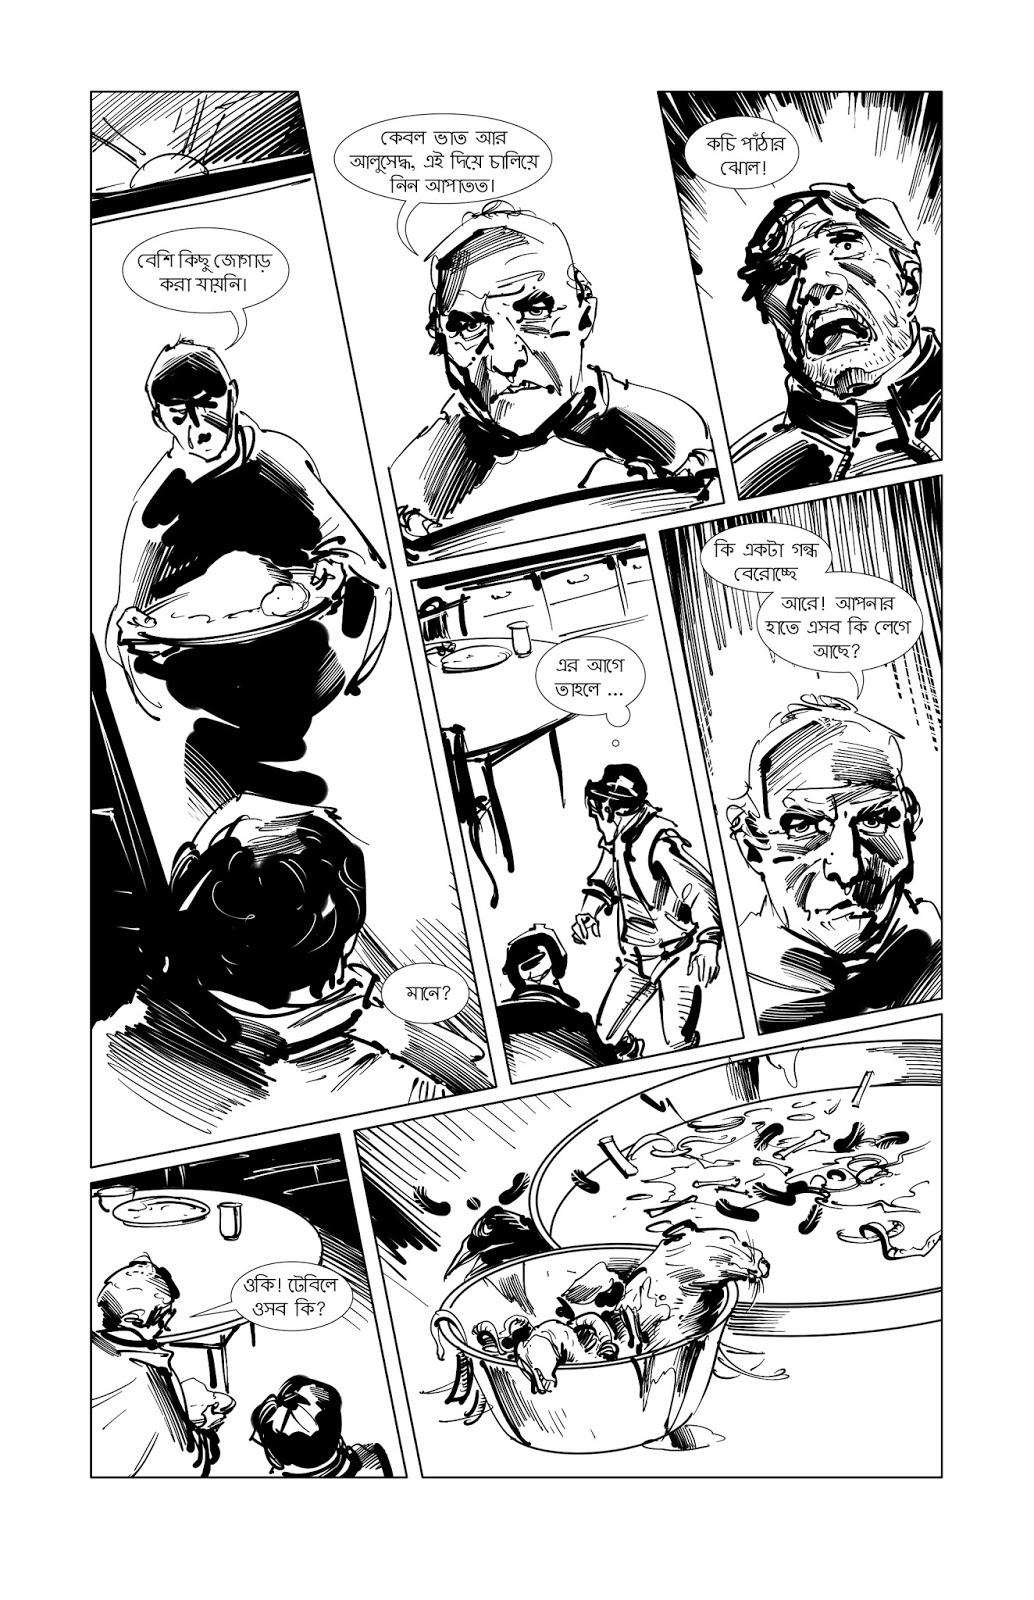 bengali horror comics illustration